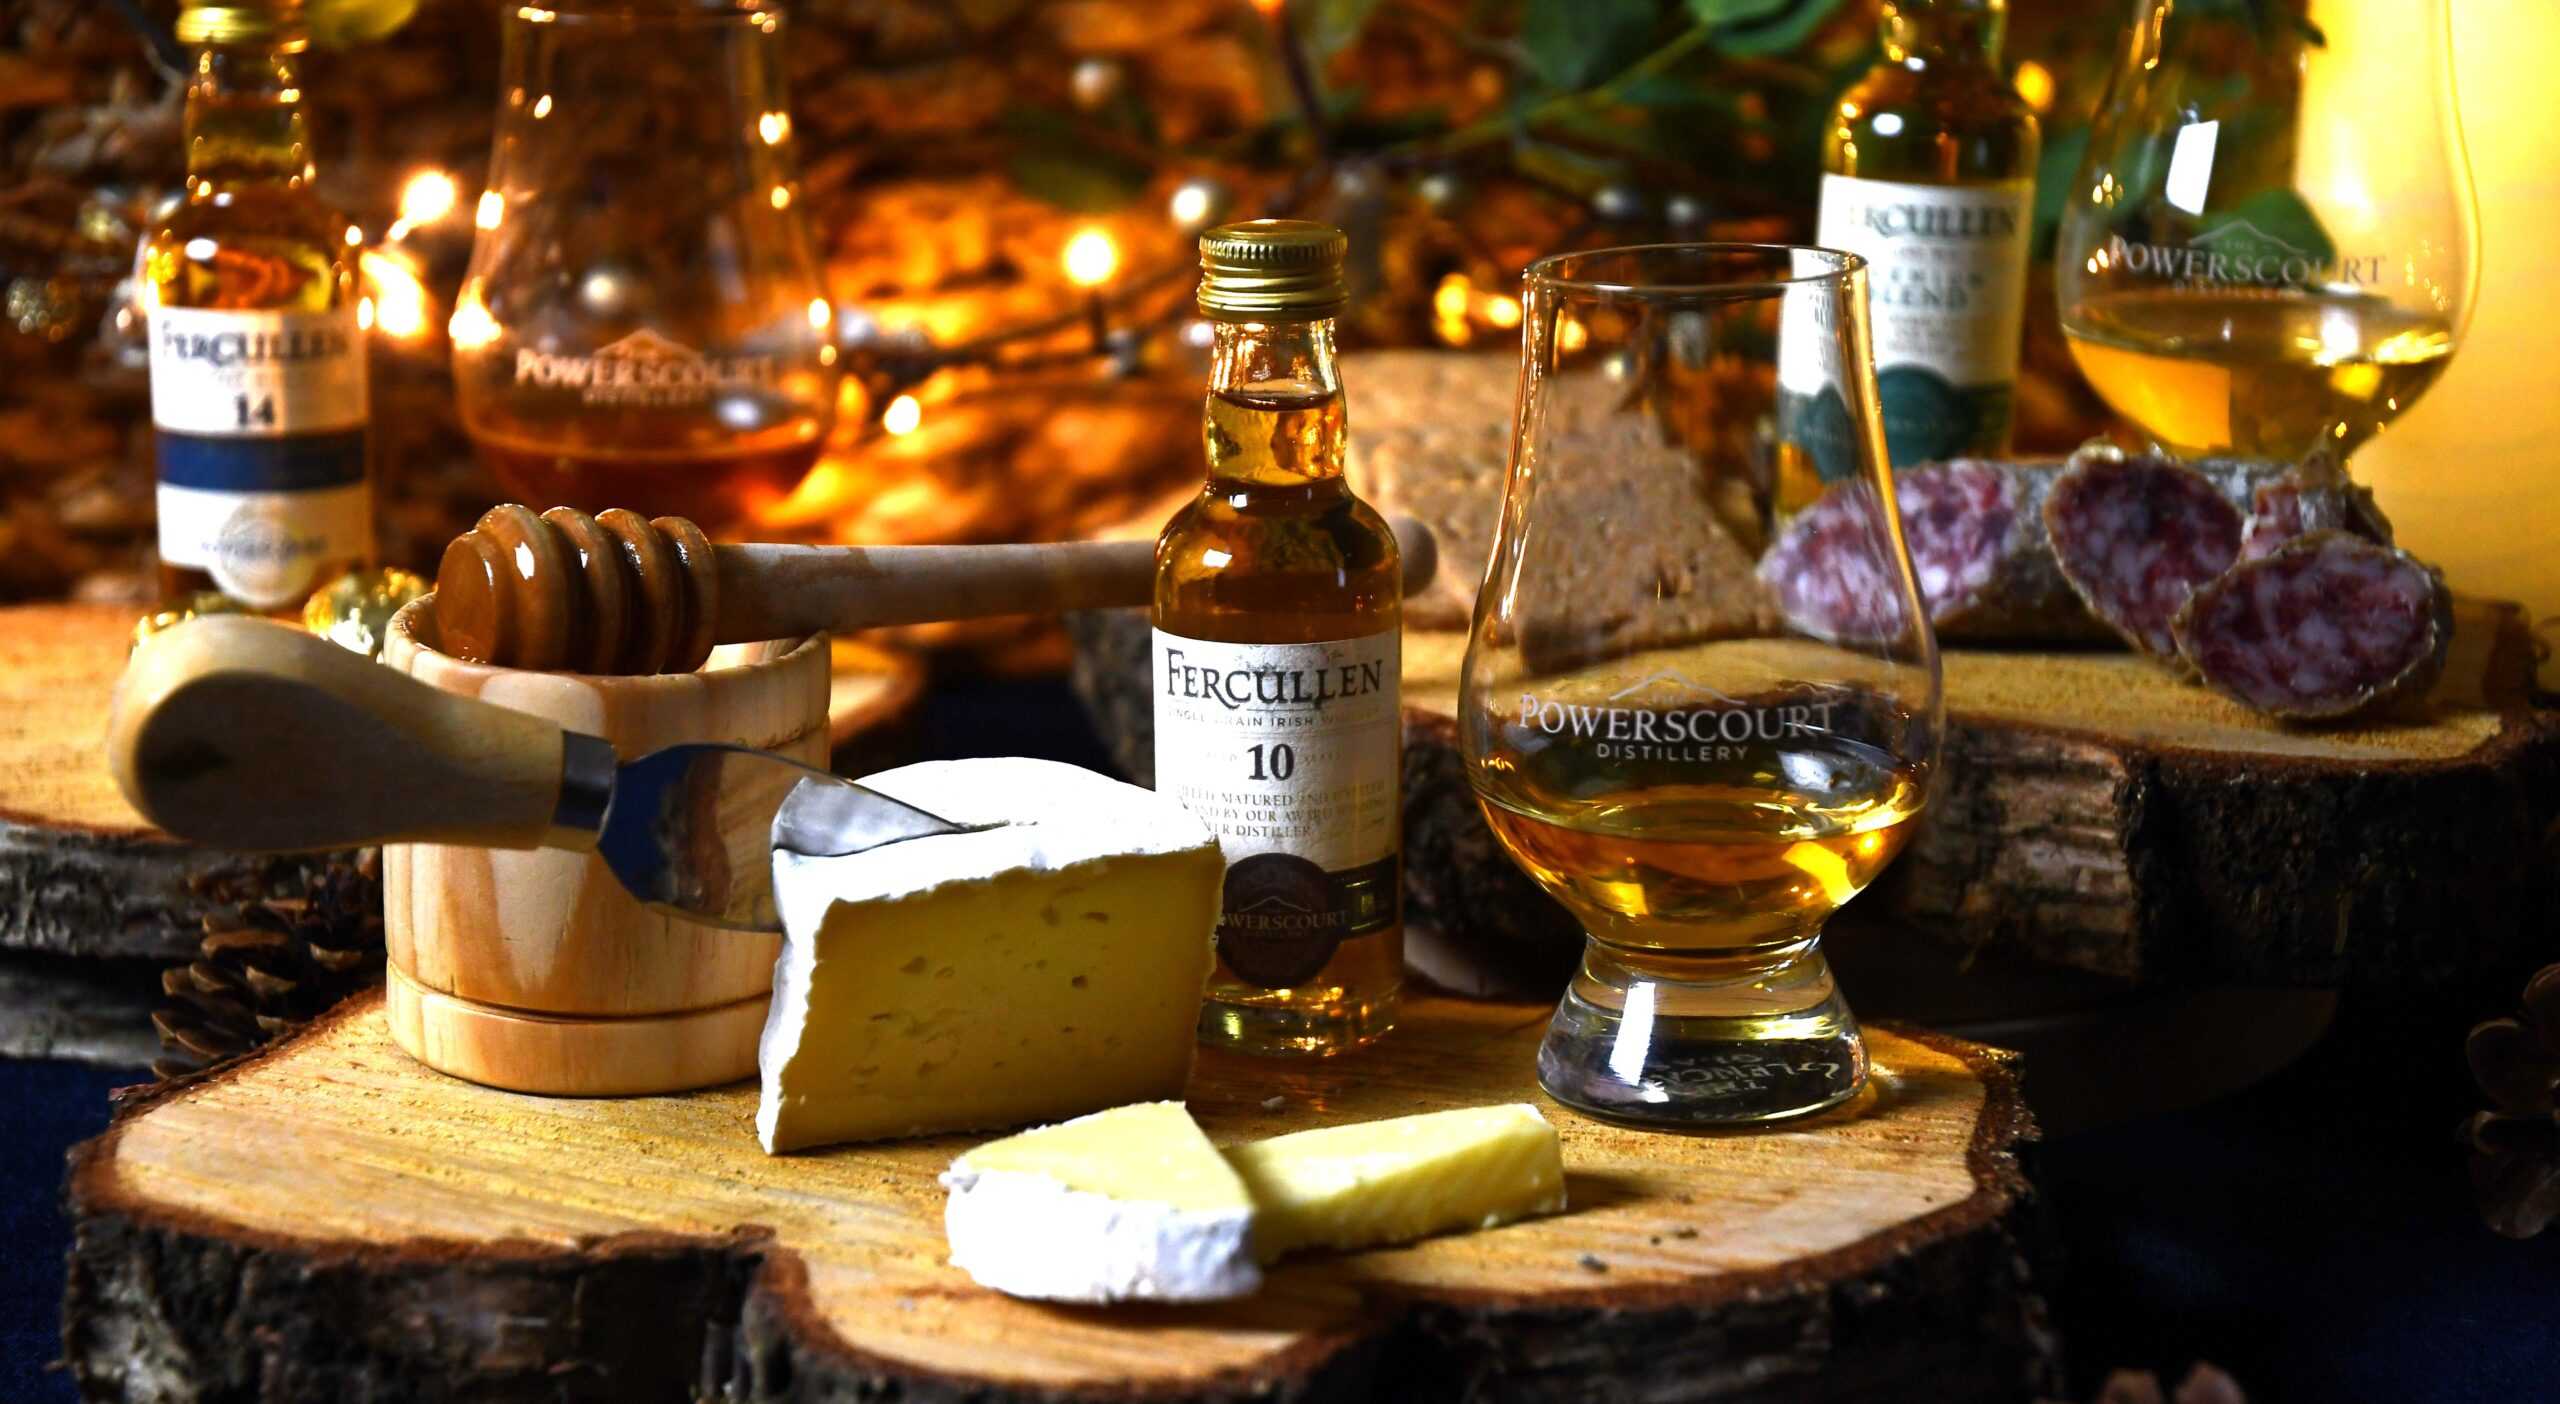 Relax, Indulge, Savour with Powerscourt Distillery's Delicious Whiskey & Food Pairing Hampers